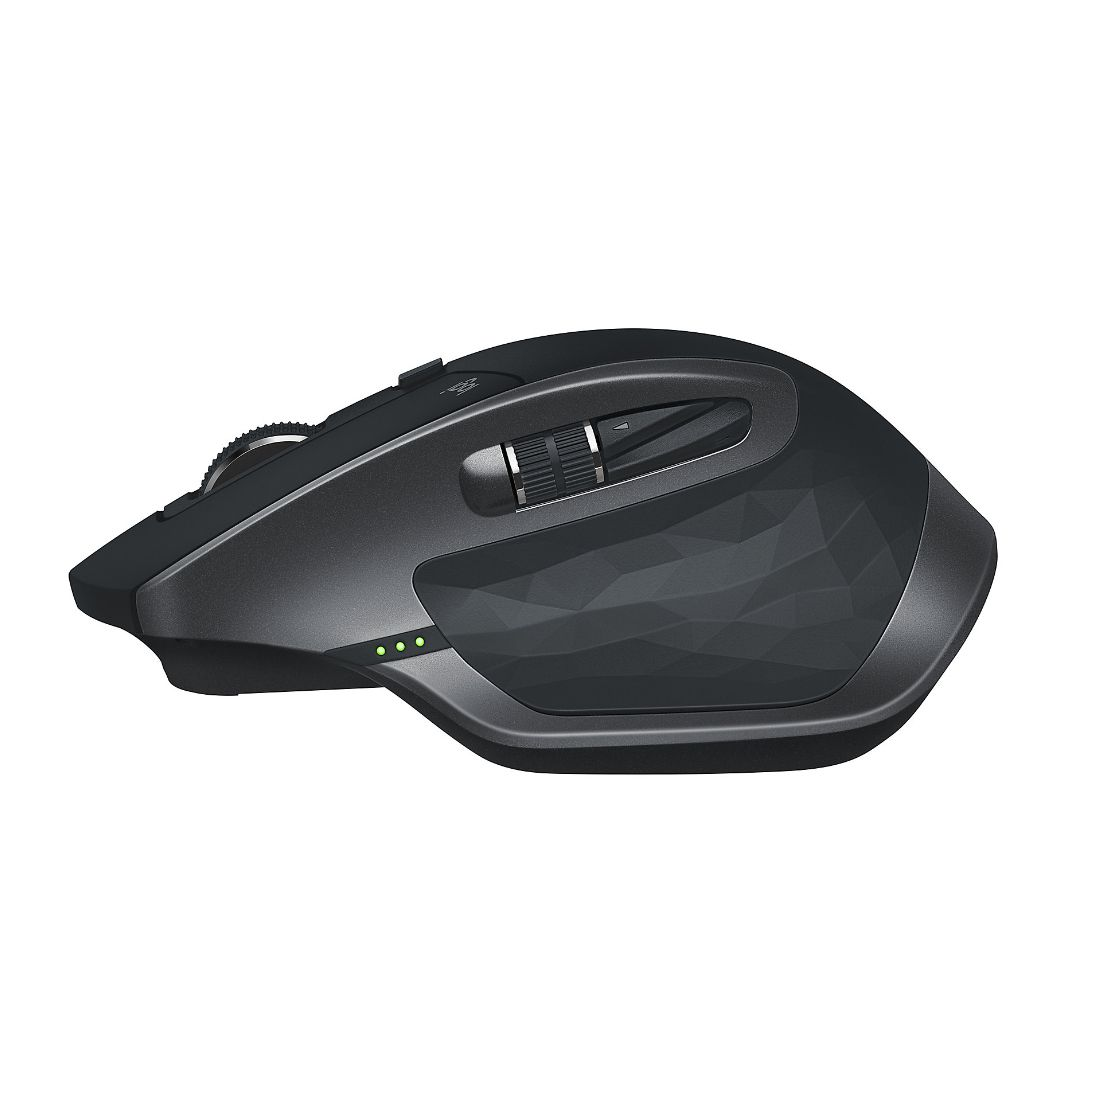 Mouse Logitech MX Master 2S Wireless e Bluetooth Unifying Conecta 3 Mesmo Tempo